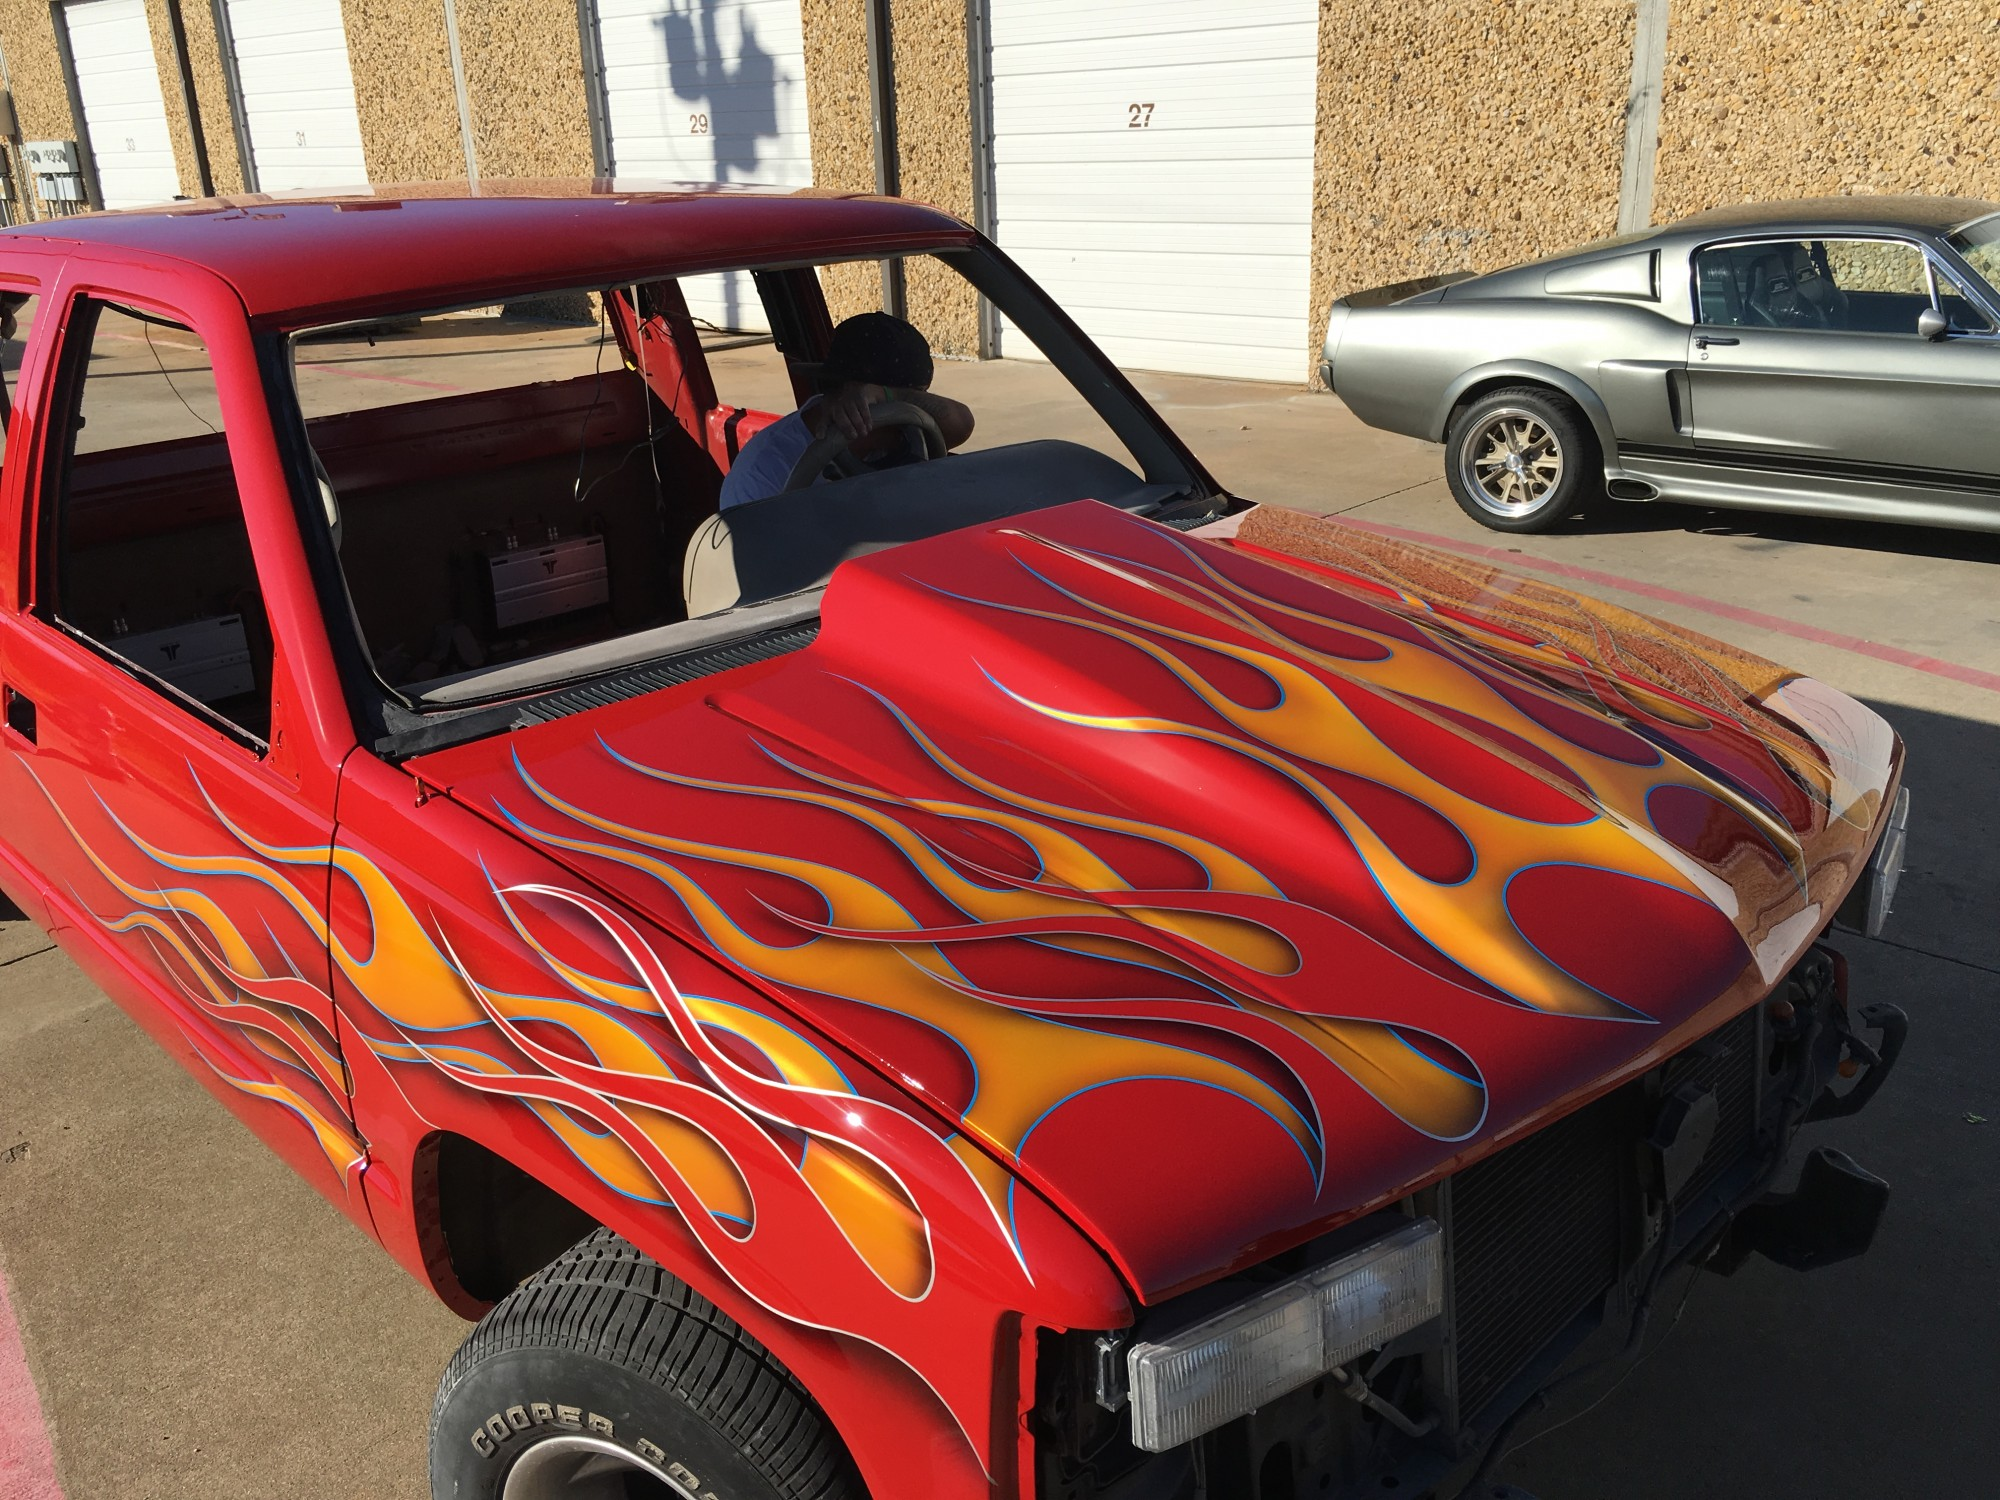 Check Out The Dusold Designs Guys Flaming A Chevy Pickup! Tons Of Work But Bitchin!